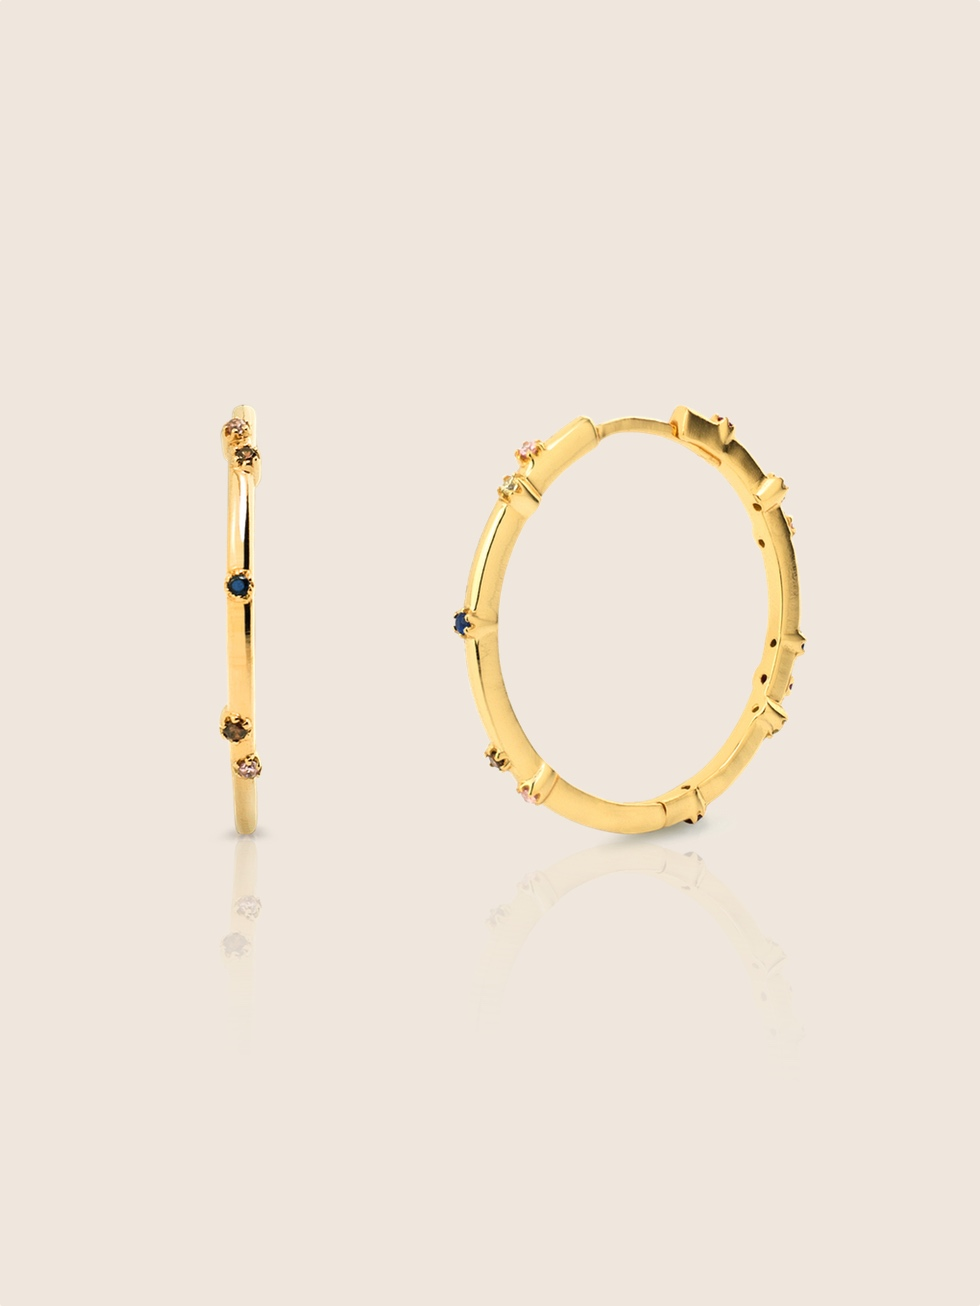 AQUAREL gold hoops earrings